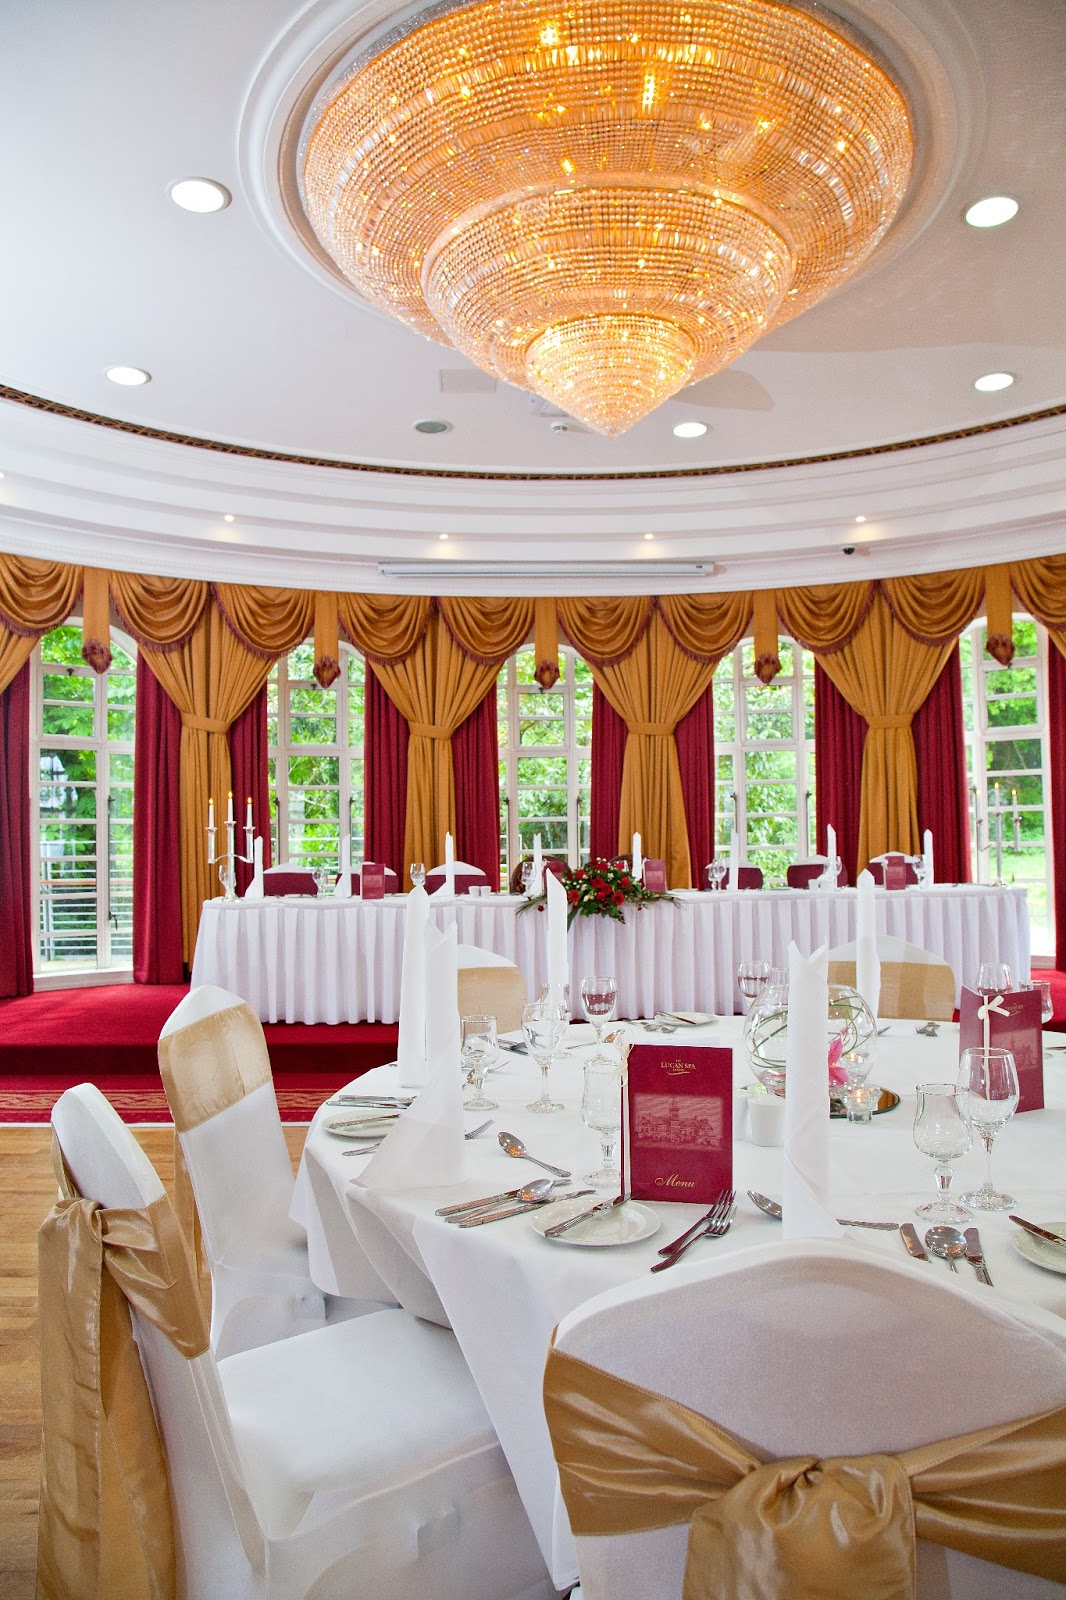 Lucan Spa Hotel All Inclusive Wedding Package